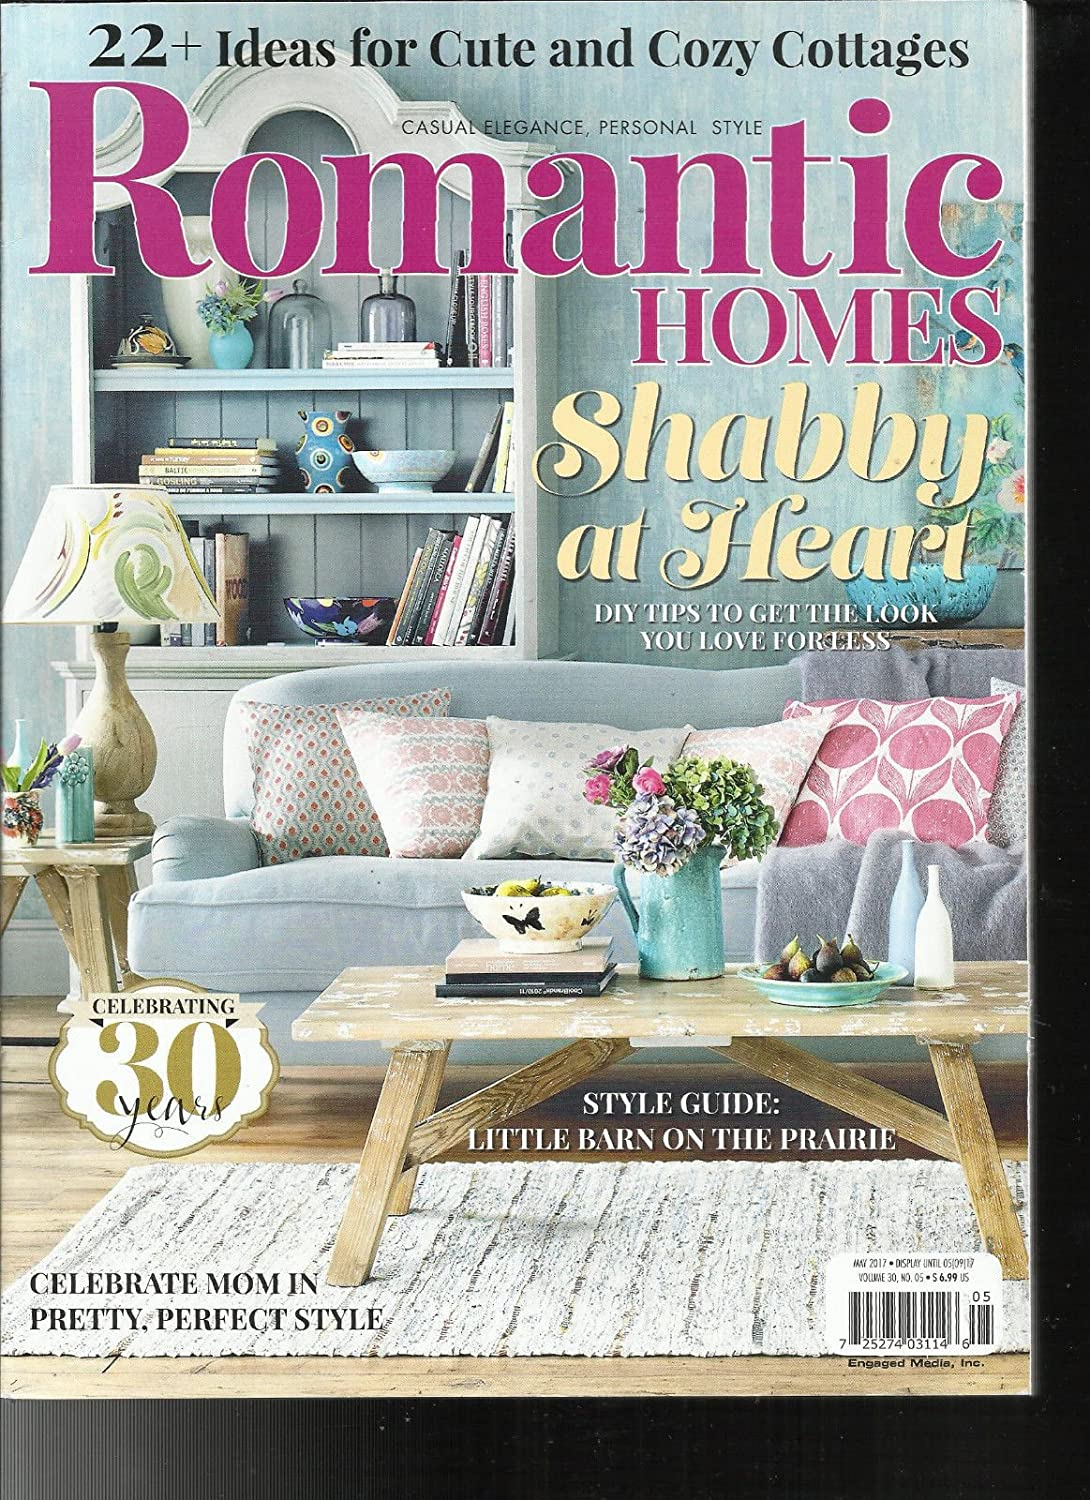 ROMANTIC HOMES, CASUAL ELEGANCE PERSONAL STYLE MAY, 2017 N SHABBY AT HEART s3457